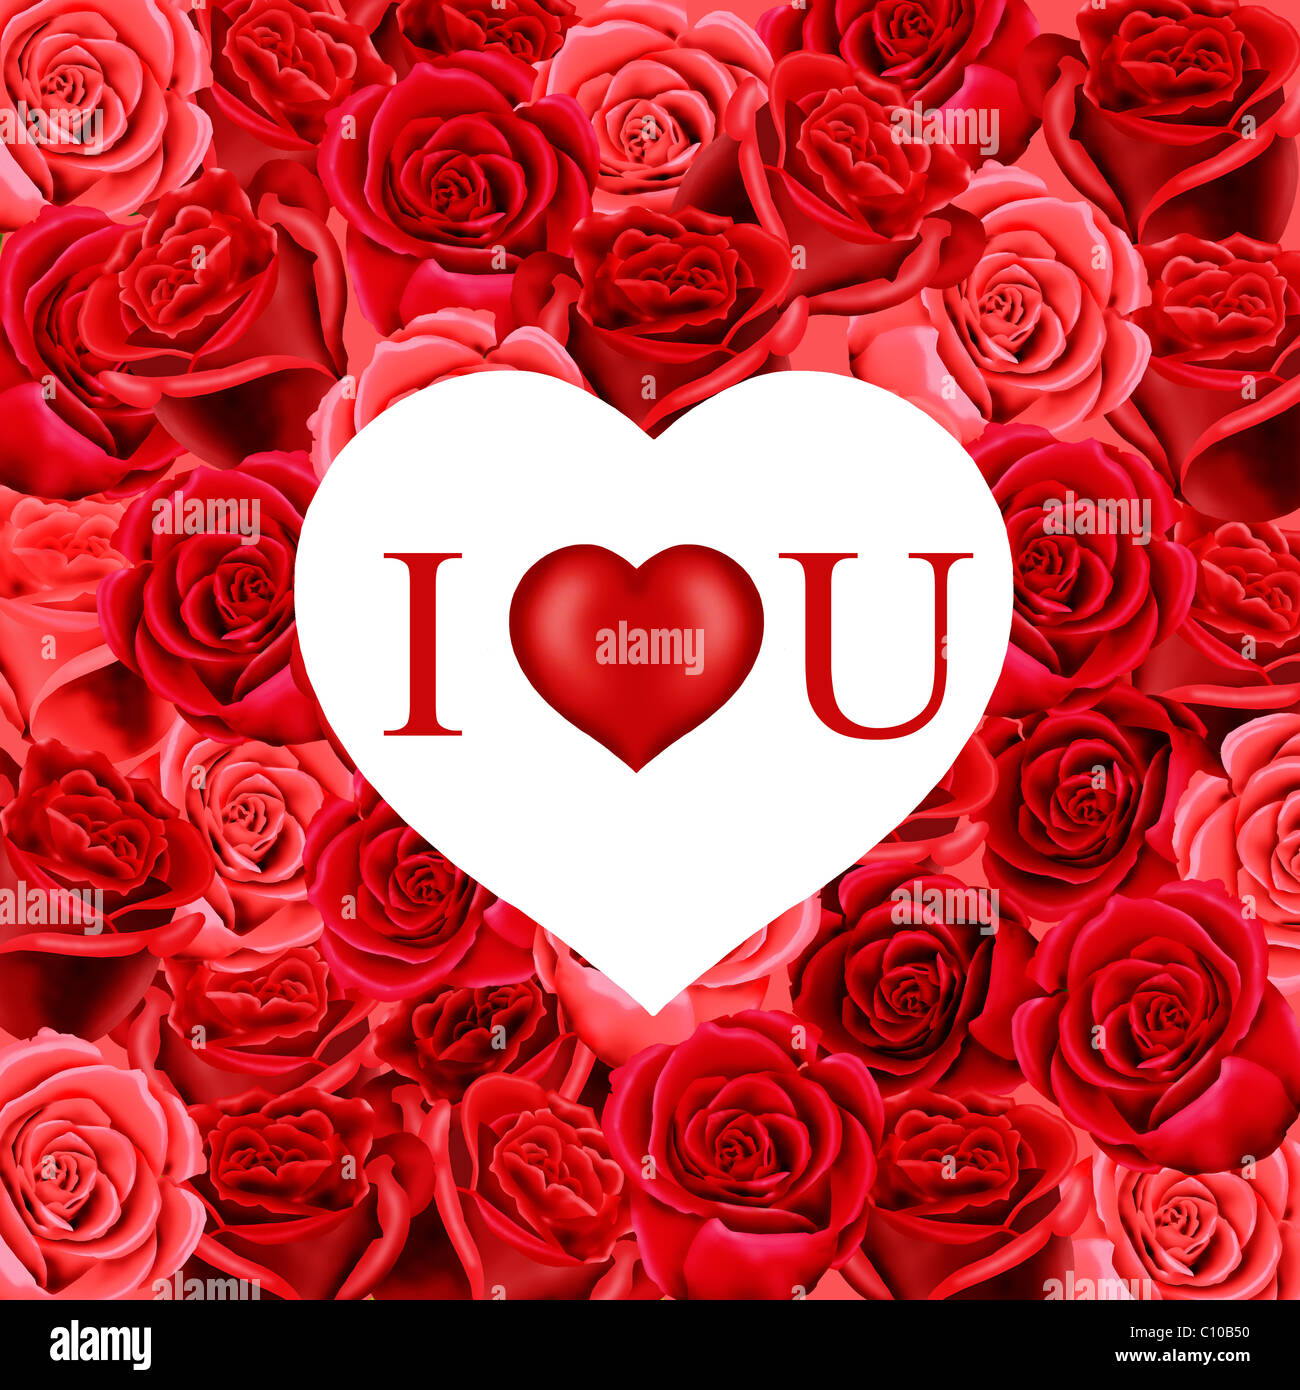 i love roses stock photos i love roses stock images page 3 alamy